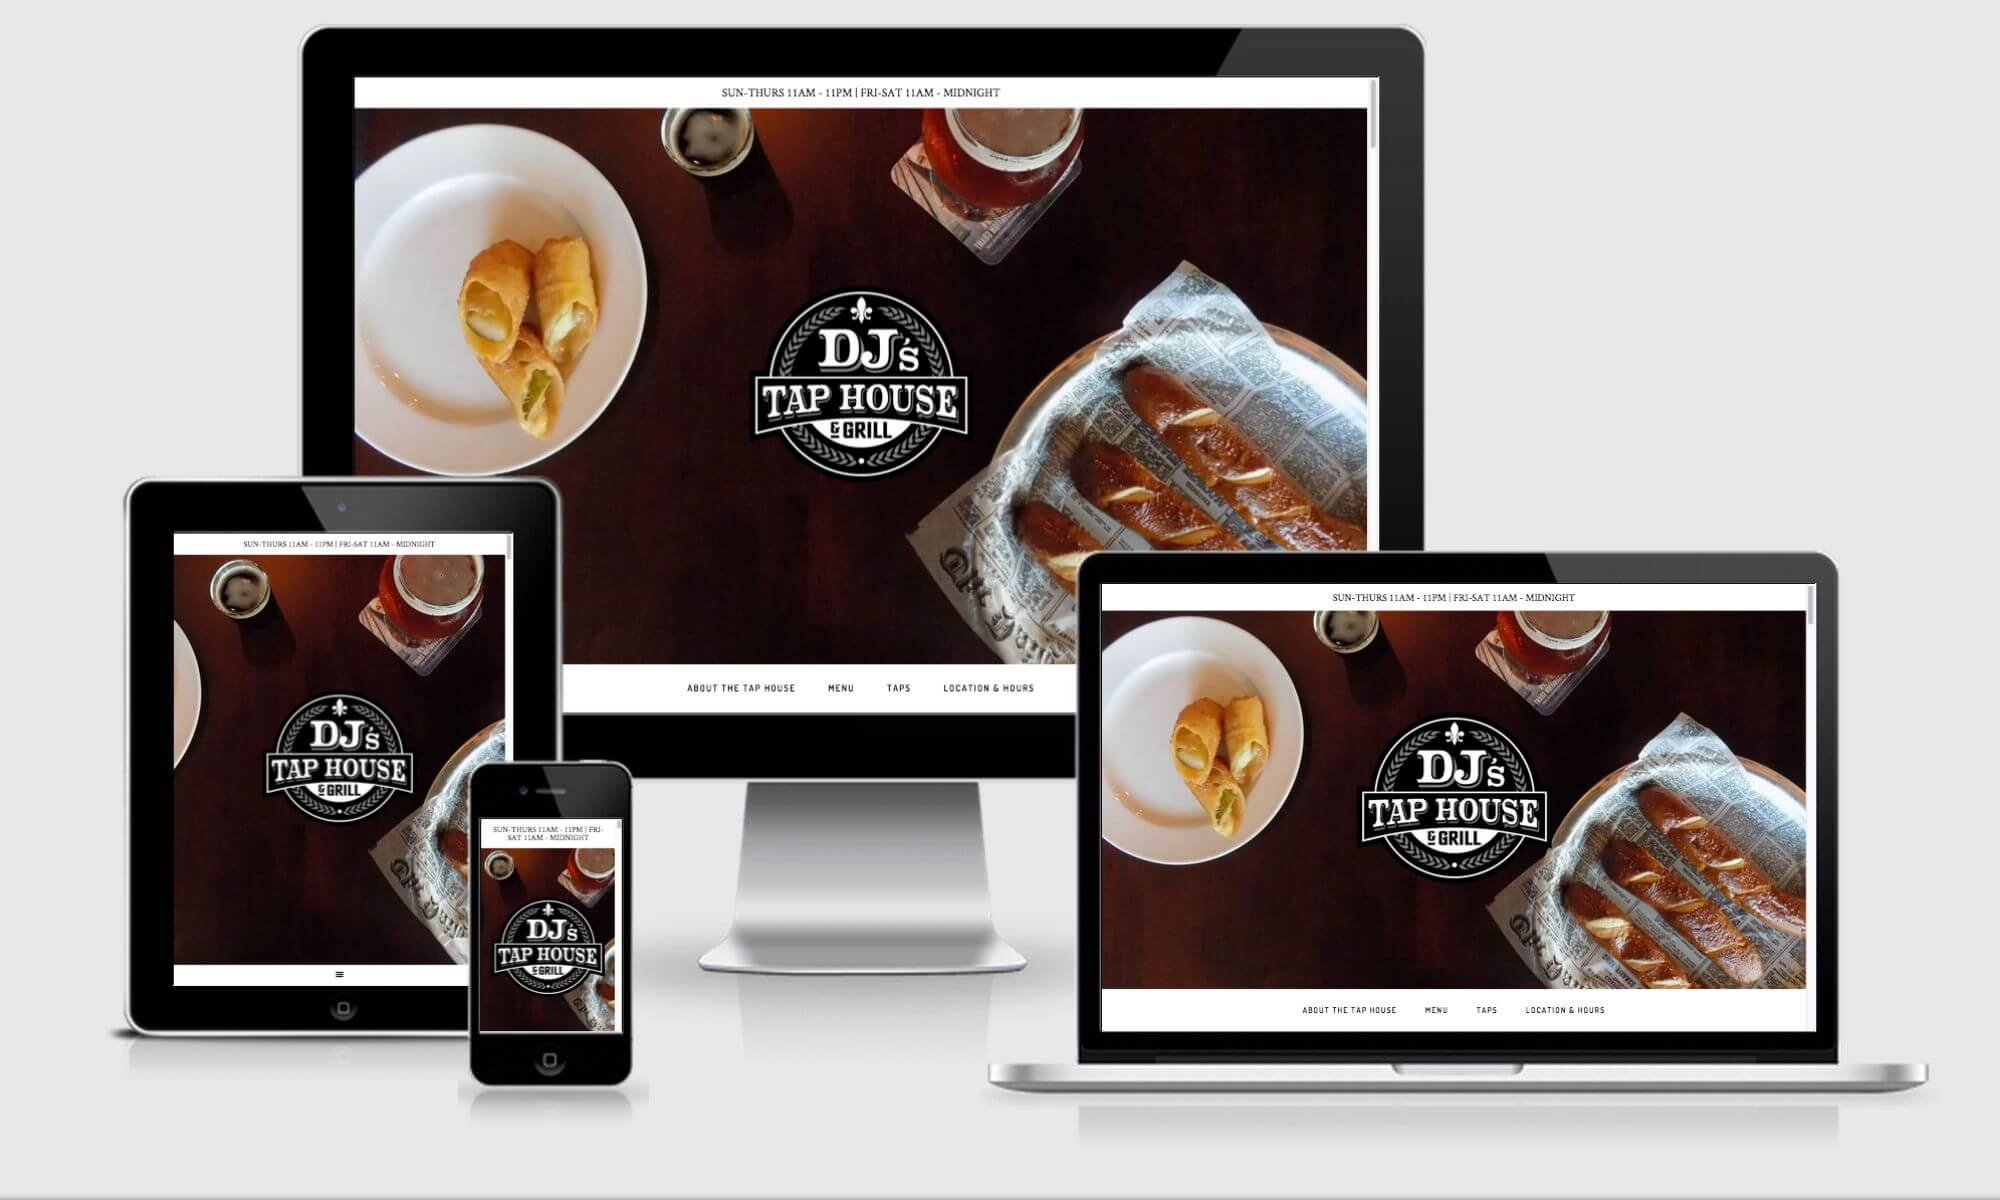 DJ's Tap House and Grill website design